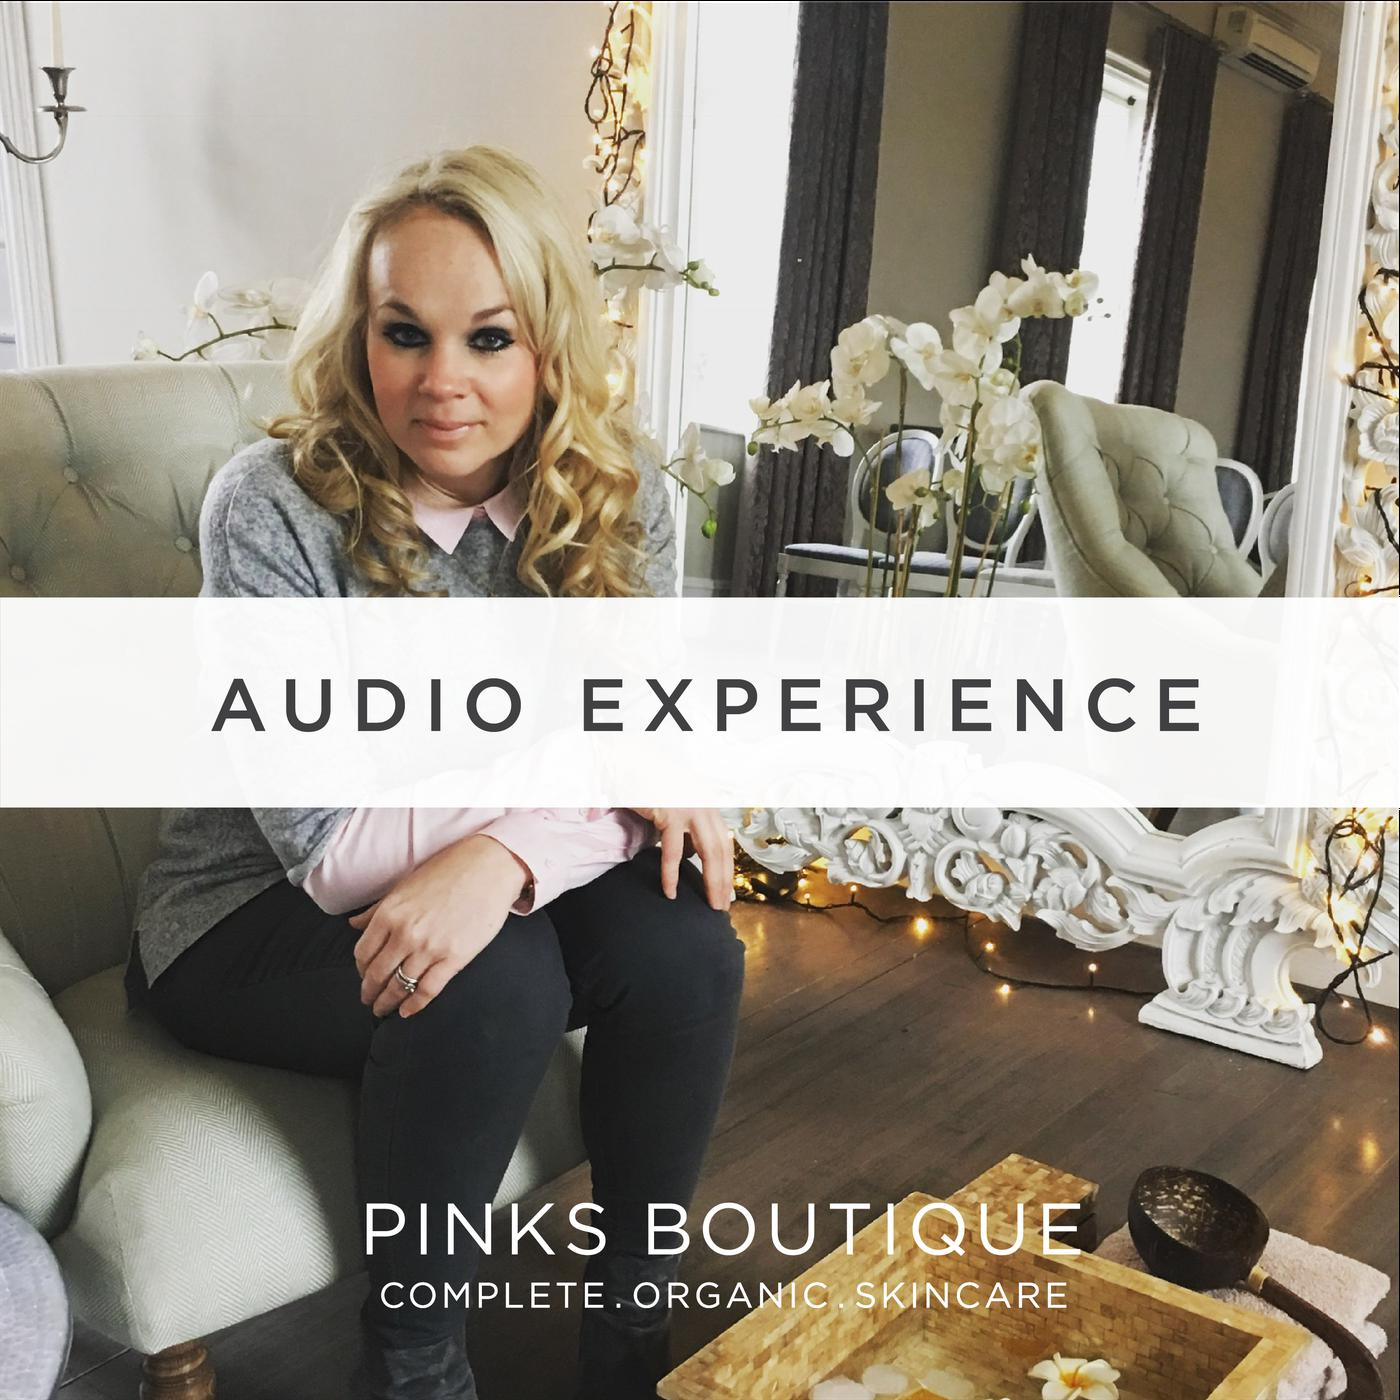 Pinks Boutique Podcast with Kirstie & Luke Sherriff | Listen Notes